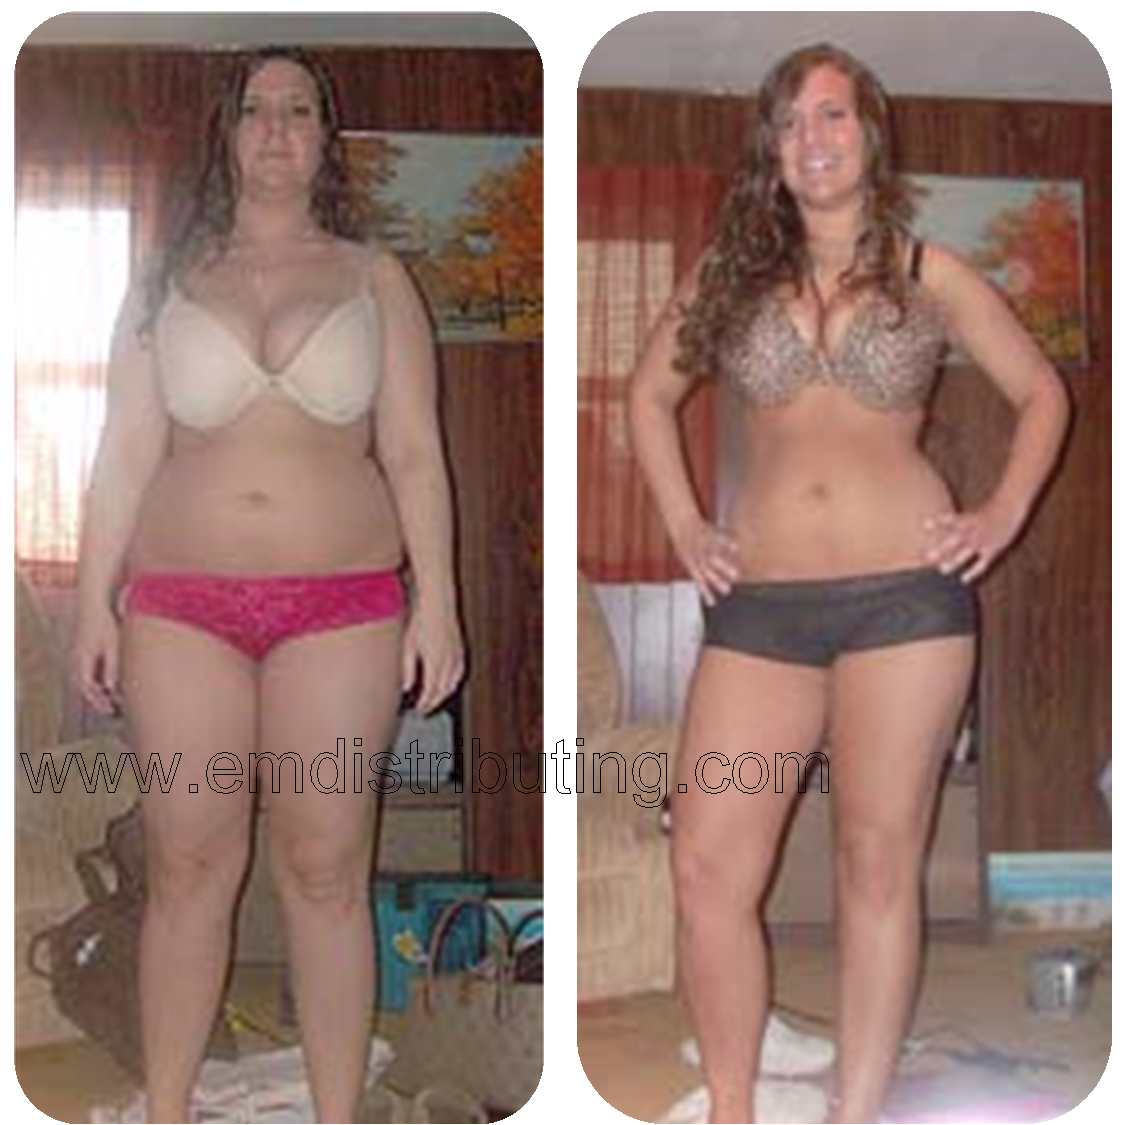 hcg diet before and after, hcg before and after, hcg weight loss ...